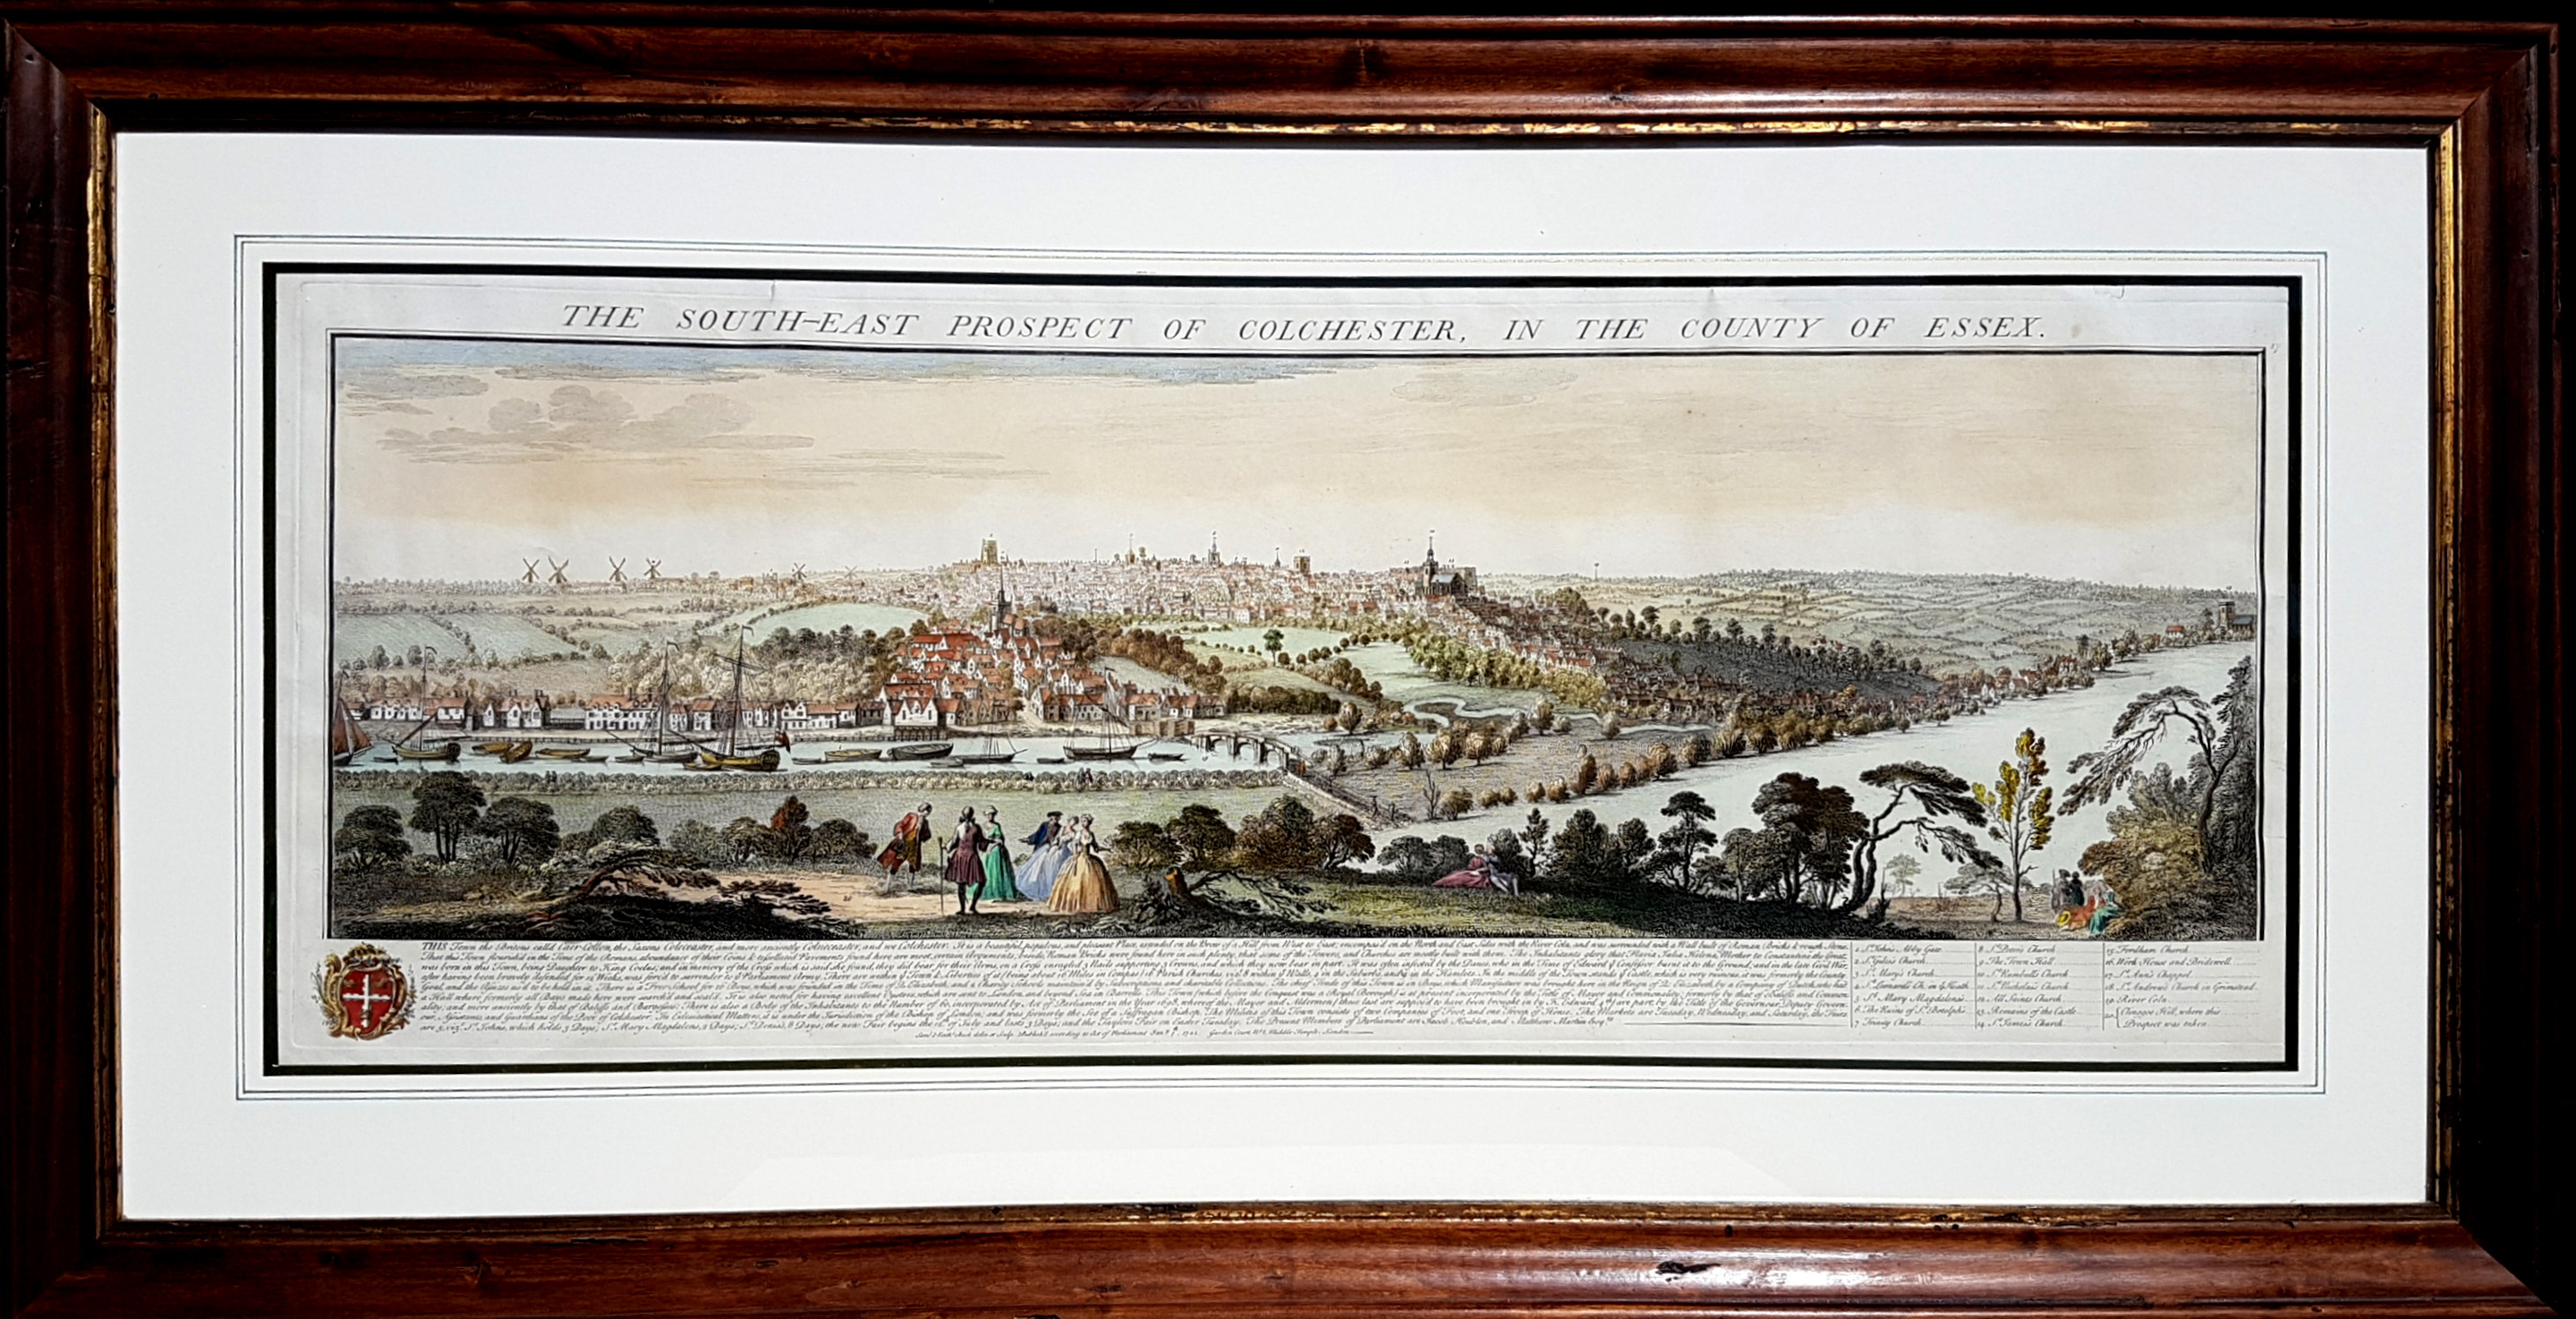 Framed. Buck's South-East Prospect of Colchester, Essex, c1741.